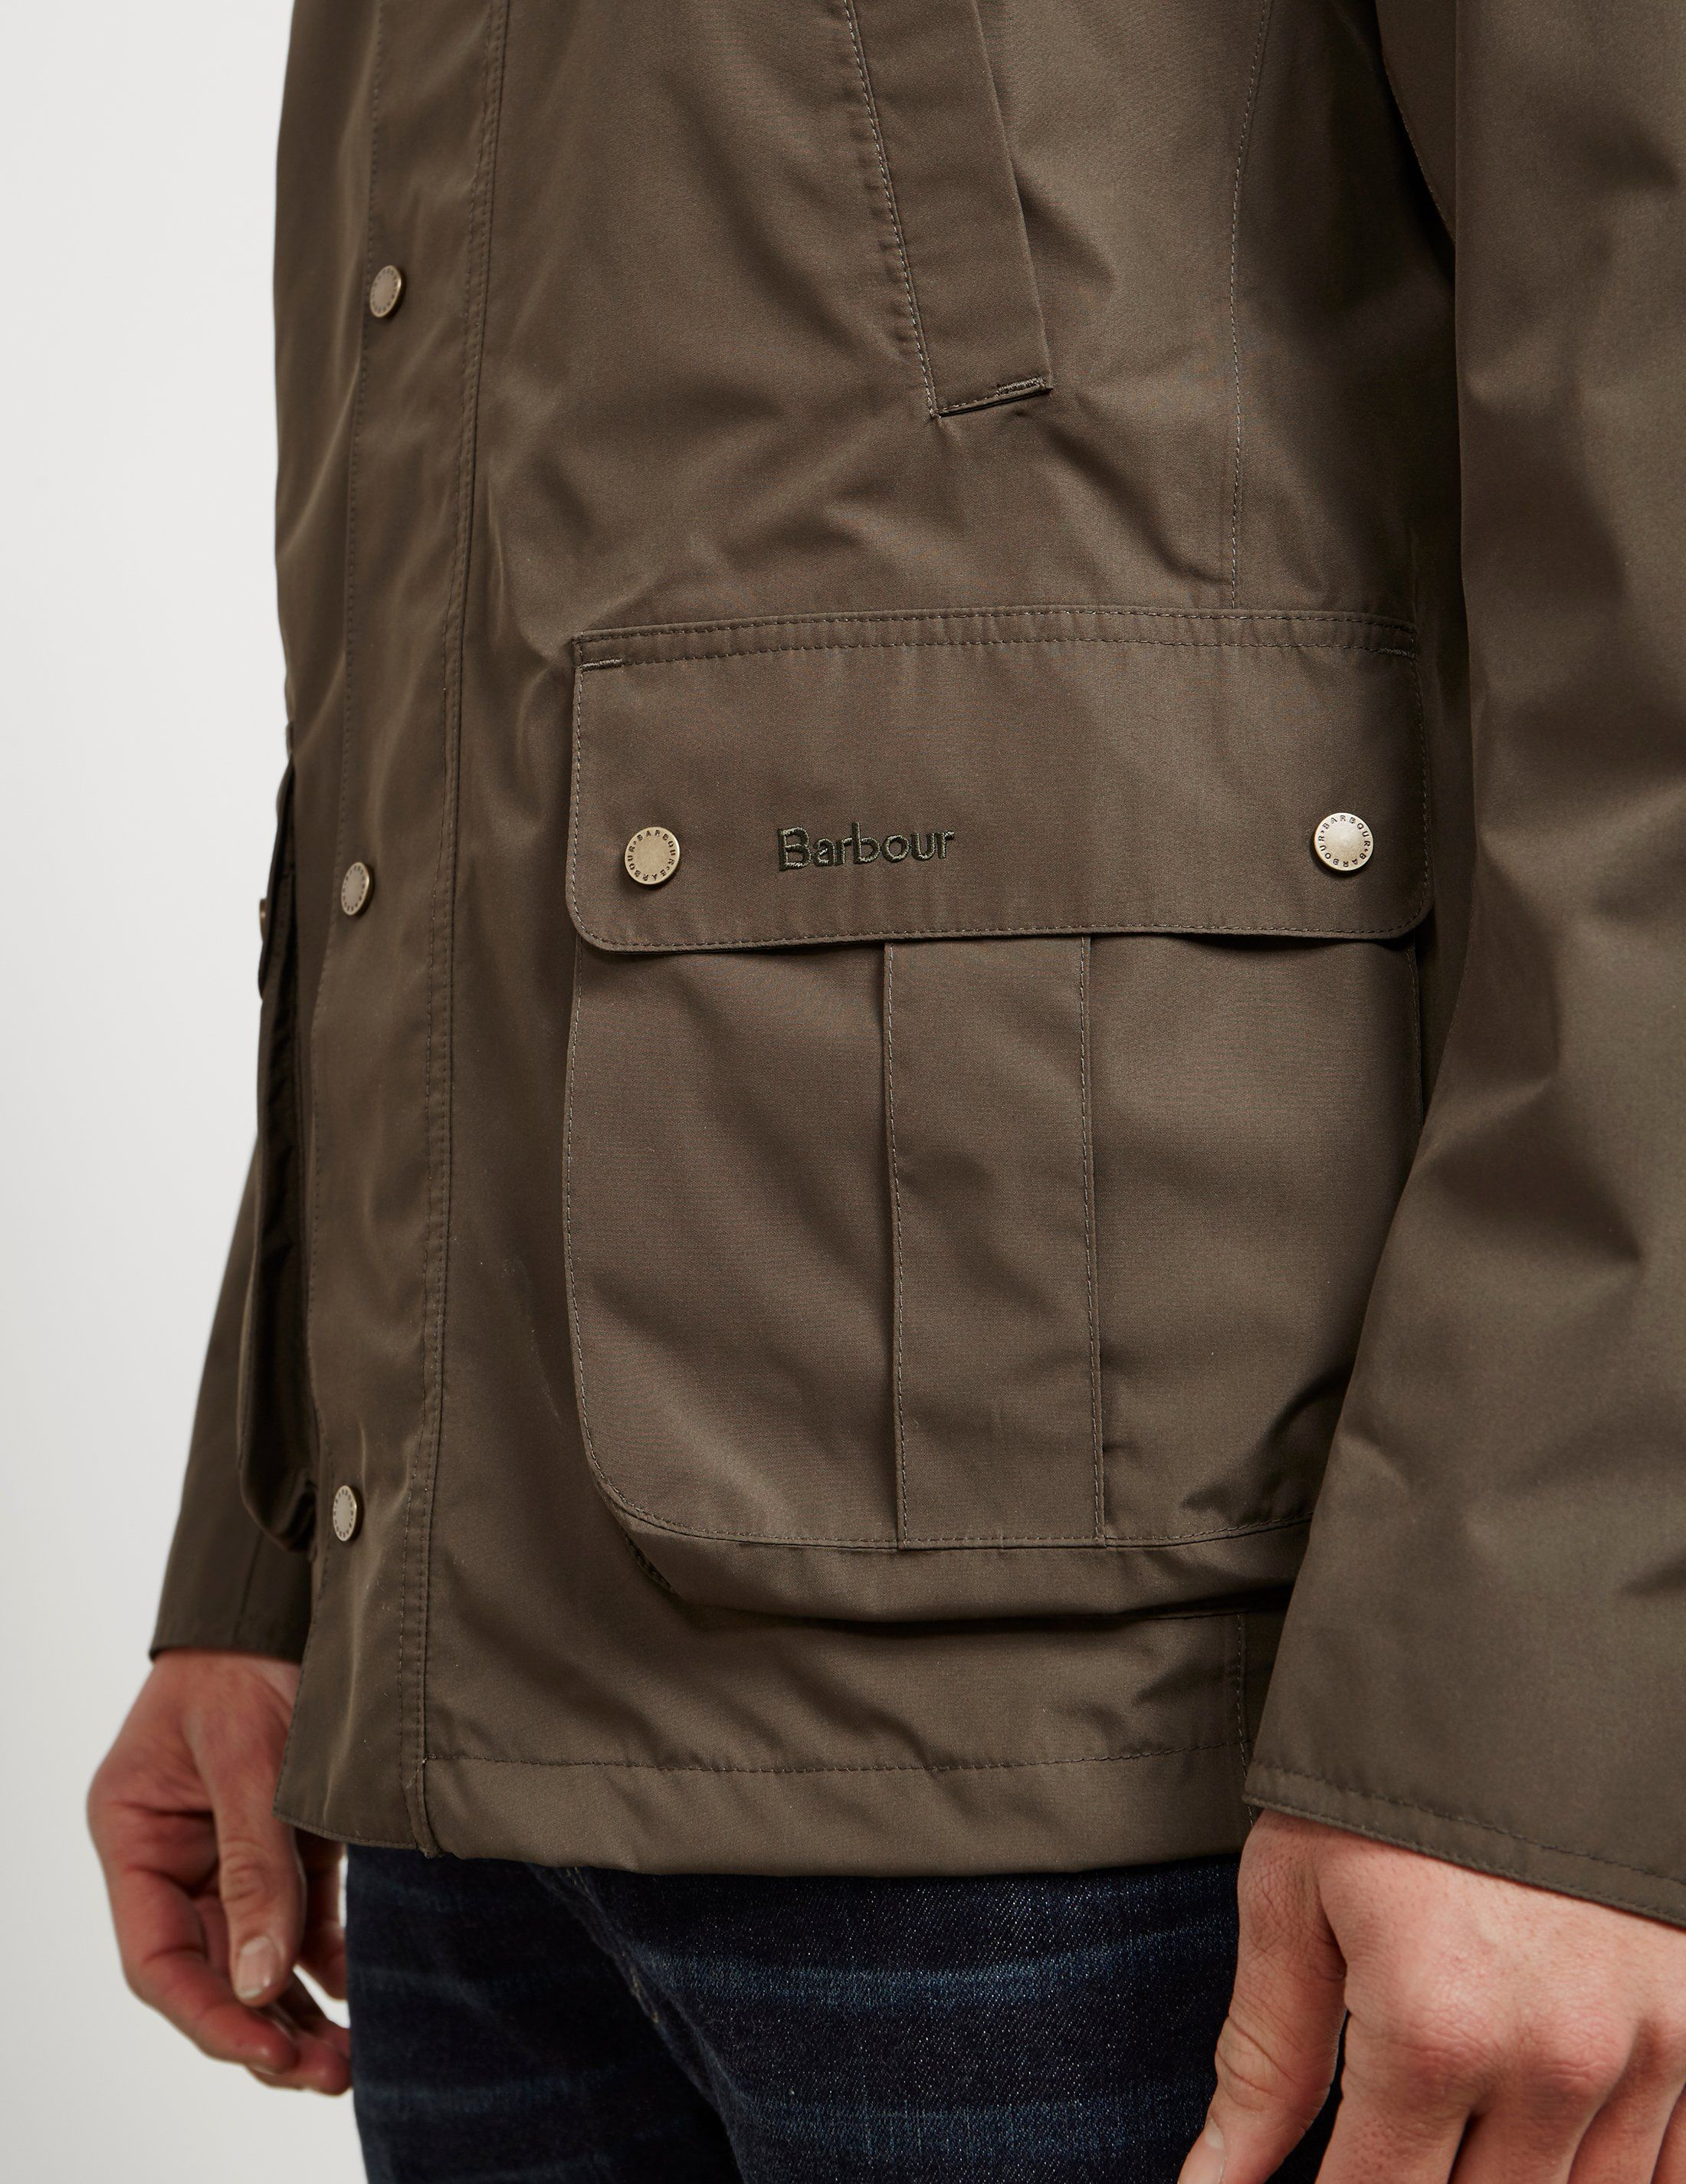 Barbour Severn Waterproof Jacket